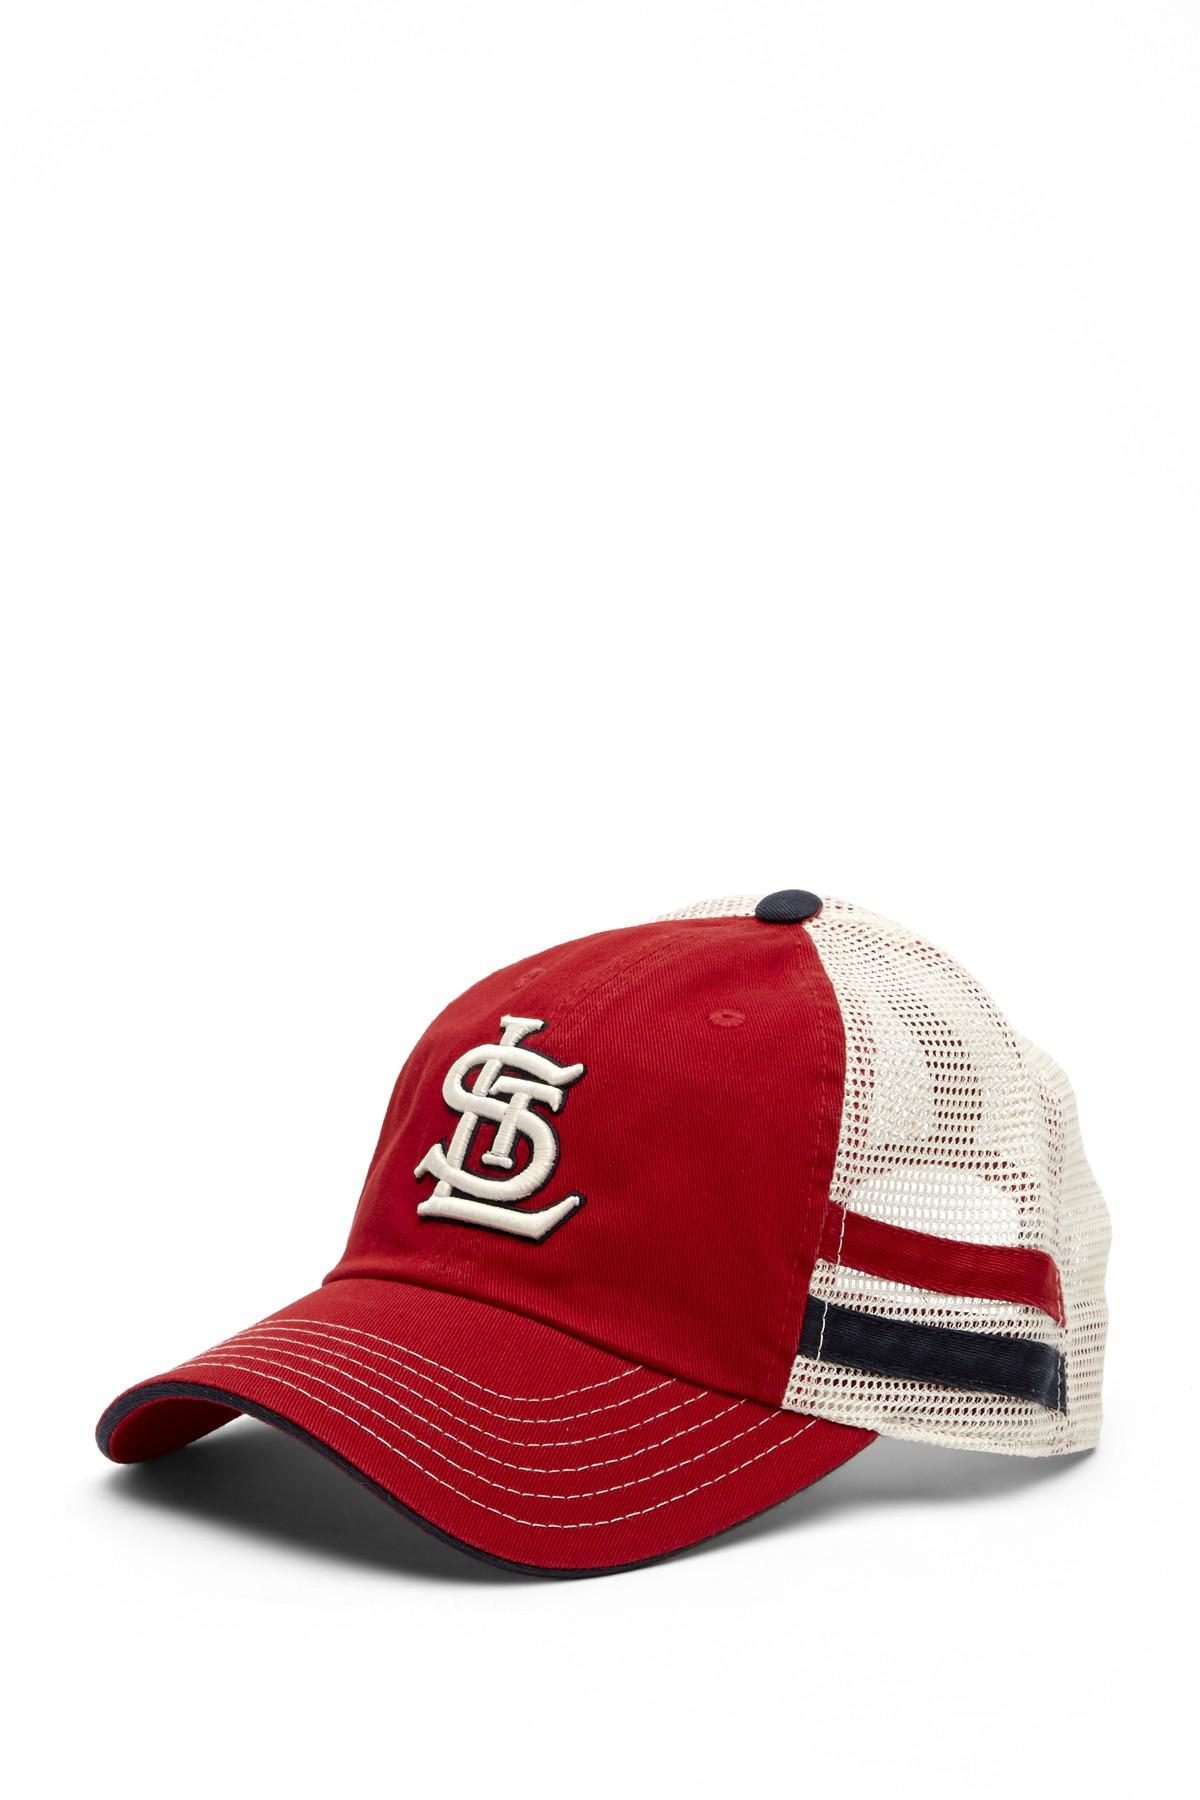 Lyst - American Needle Foundry St. Louis Cardinals Mesh Back ... 713323b71f9